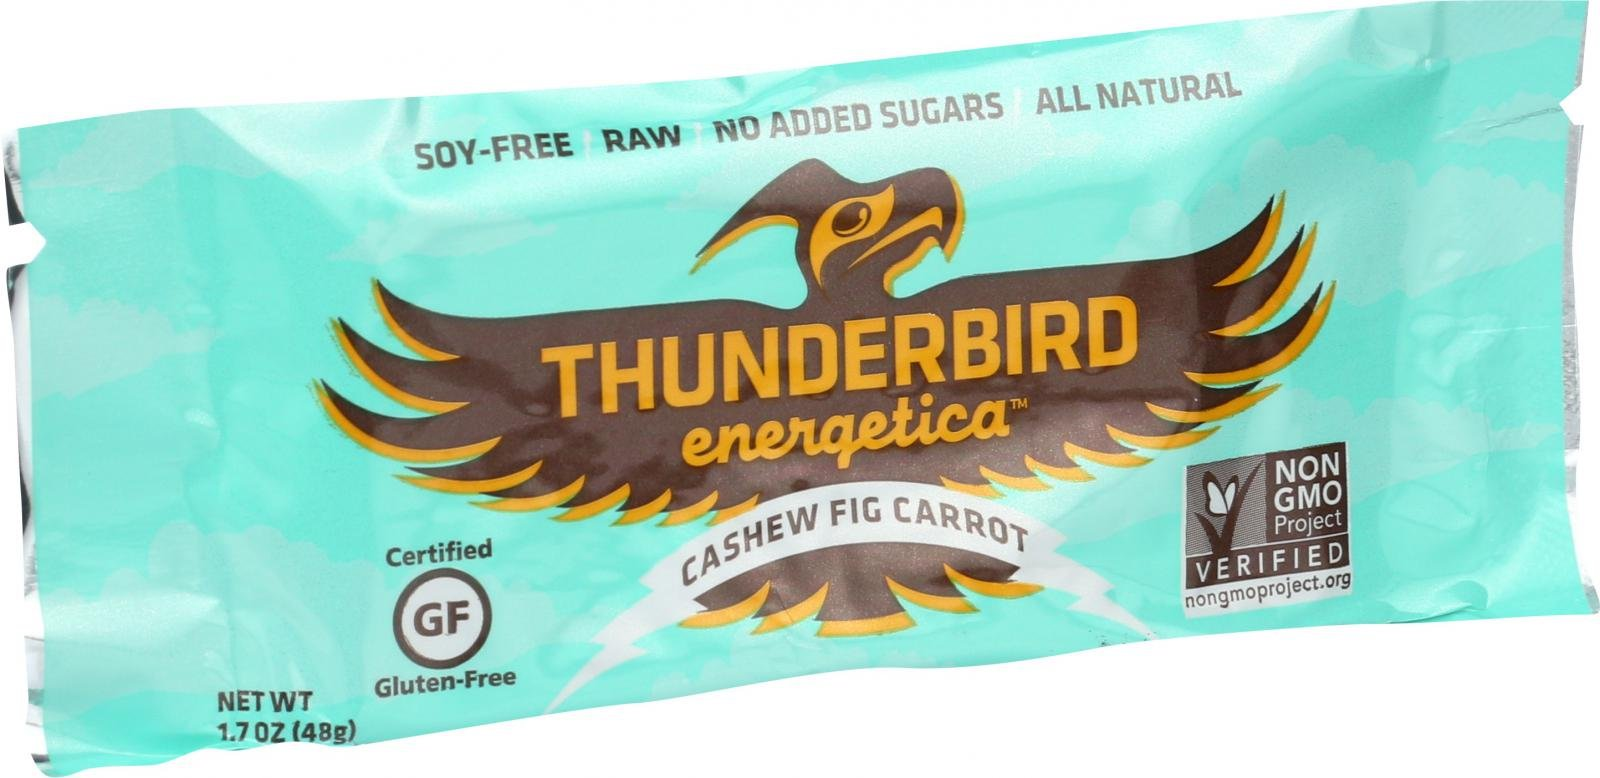 Thunderbird Energetica Cashew Fig Carrot Bar, 1.7 Ounce - 15 per case.